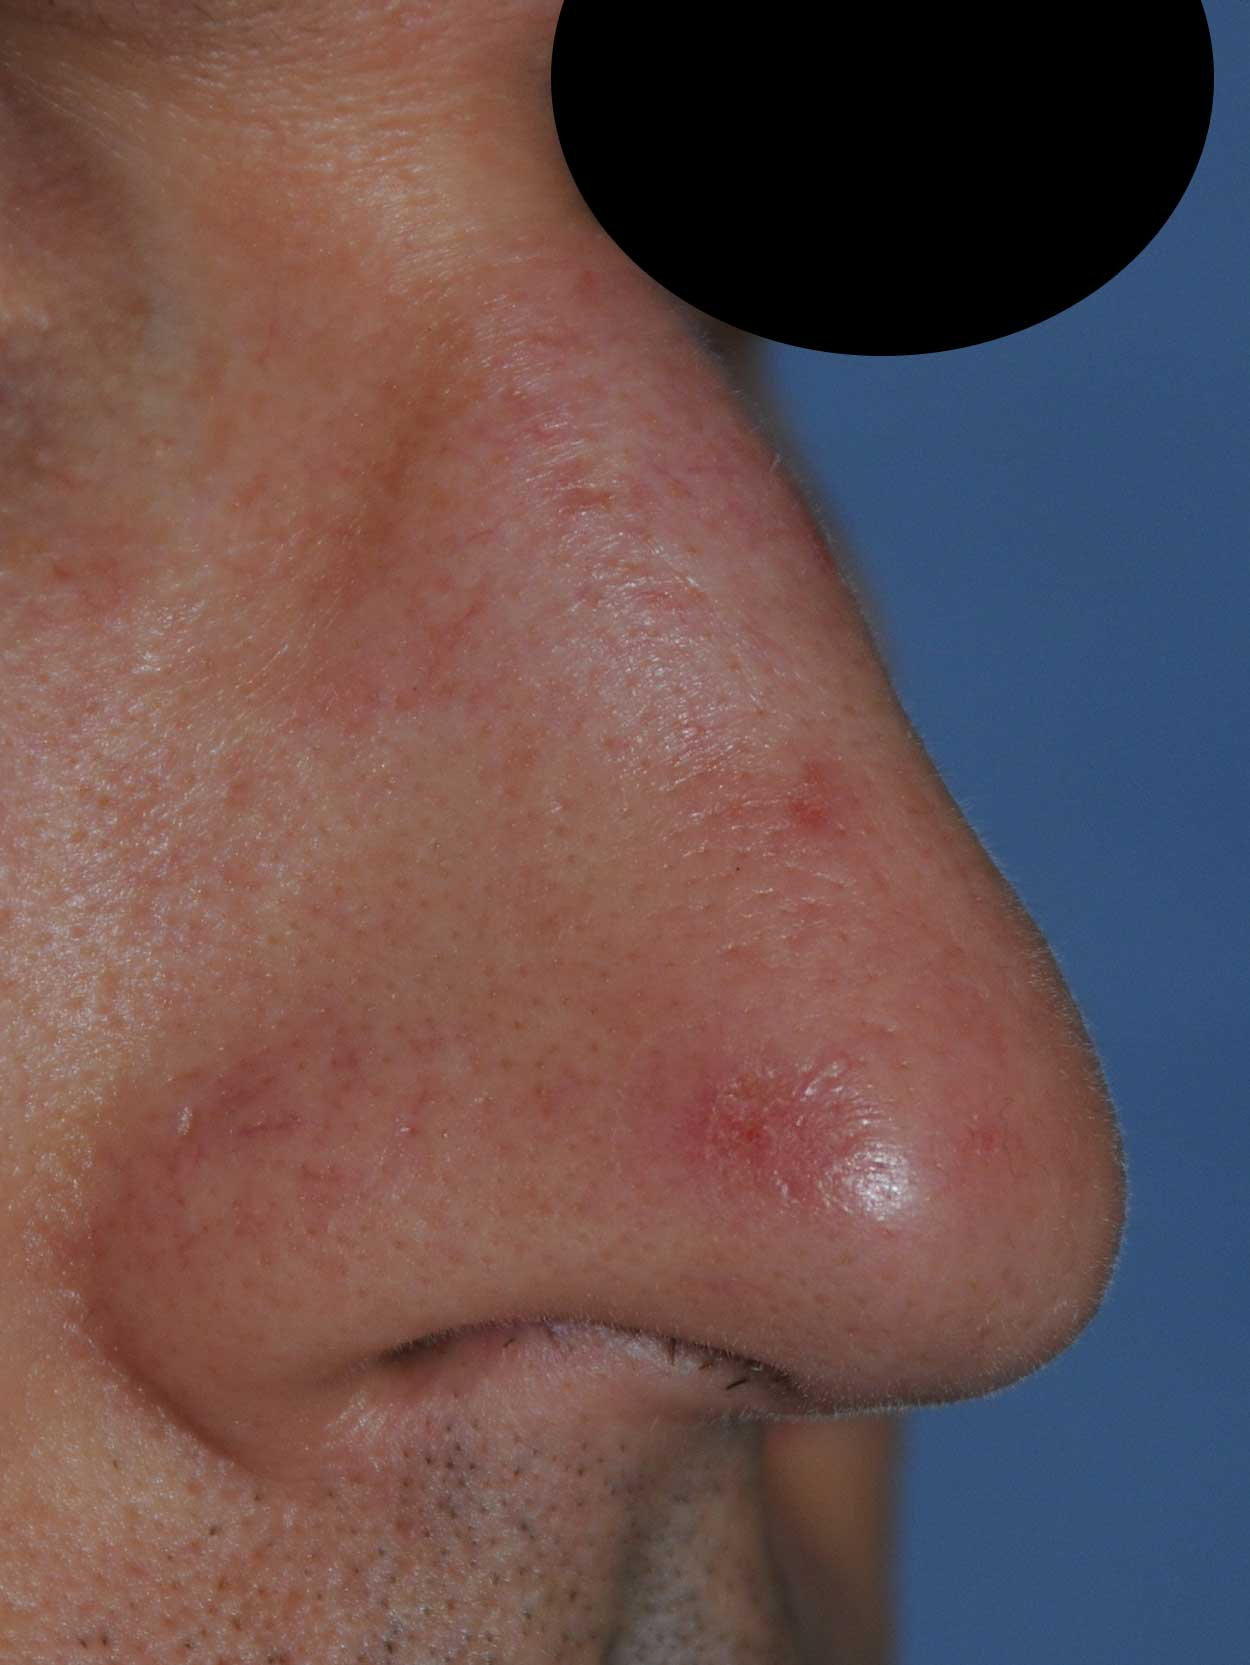 Oblique View Before Laser Resurfacing, Dermabrasion to the nose to treat scars, red marks, to improve texture, tone and even the skin appearance for this 40's Caucasian Professional Male from Bellevue, Wa